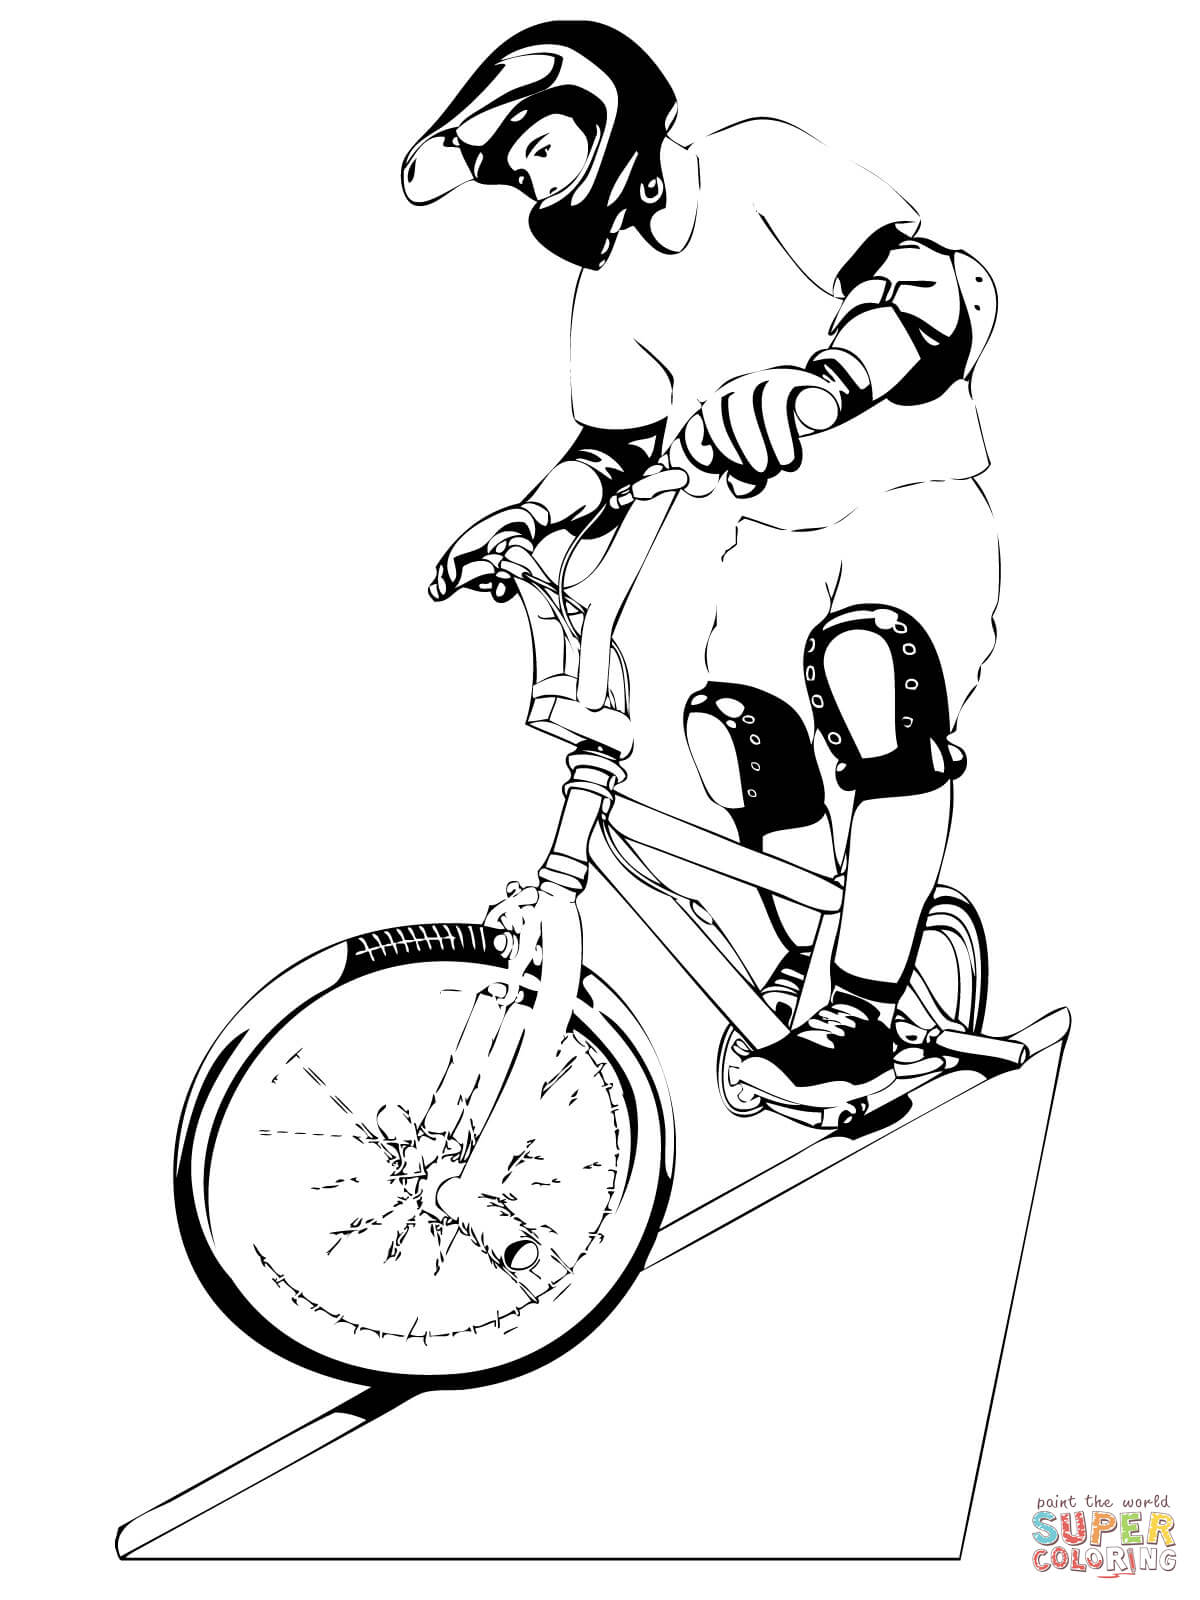 bmx printable coloring pages bmx coloring page coloring home pages printable bmx coloring